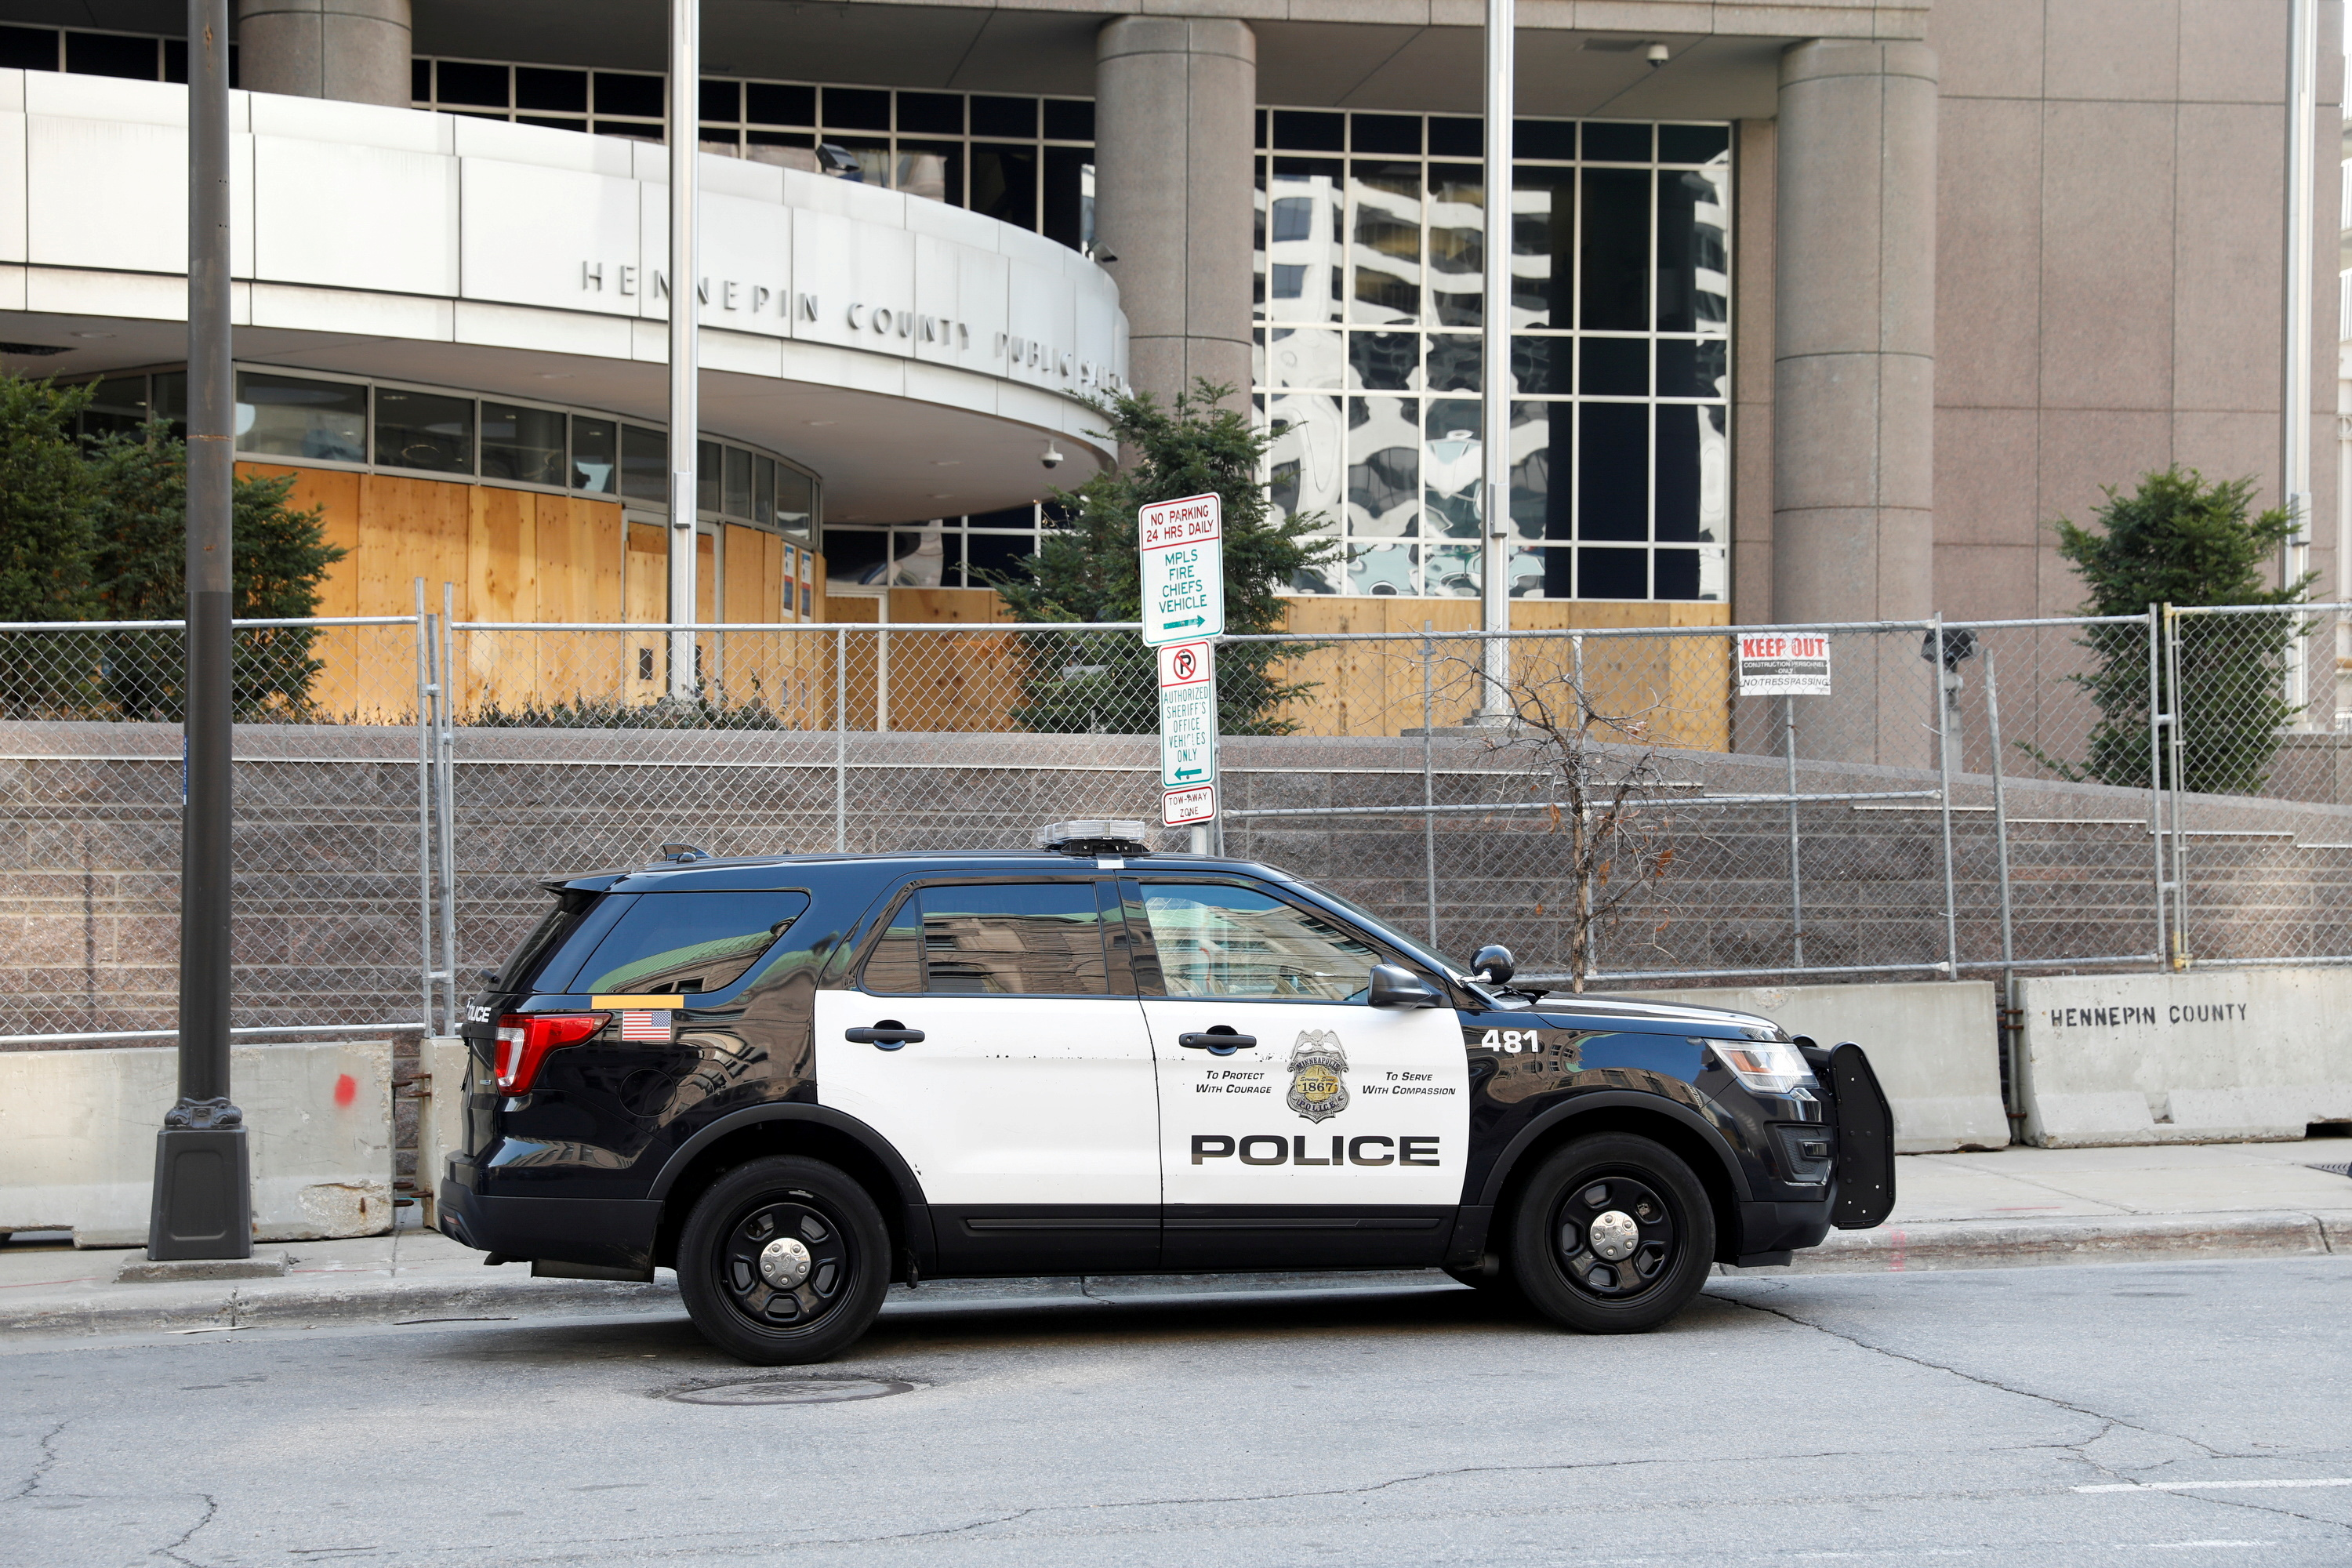 A Minneapolis Police Department vehicle is parked near the boarded-up Hennepin County Public Safety Facility in Minneapolis, Minnesota, U.S., April 2, 2021. REUTERS/Octavio Jones